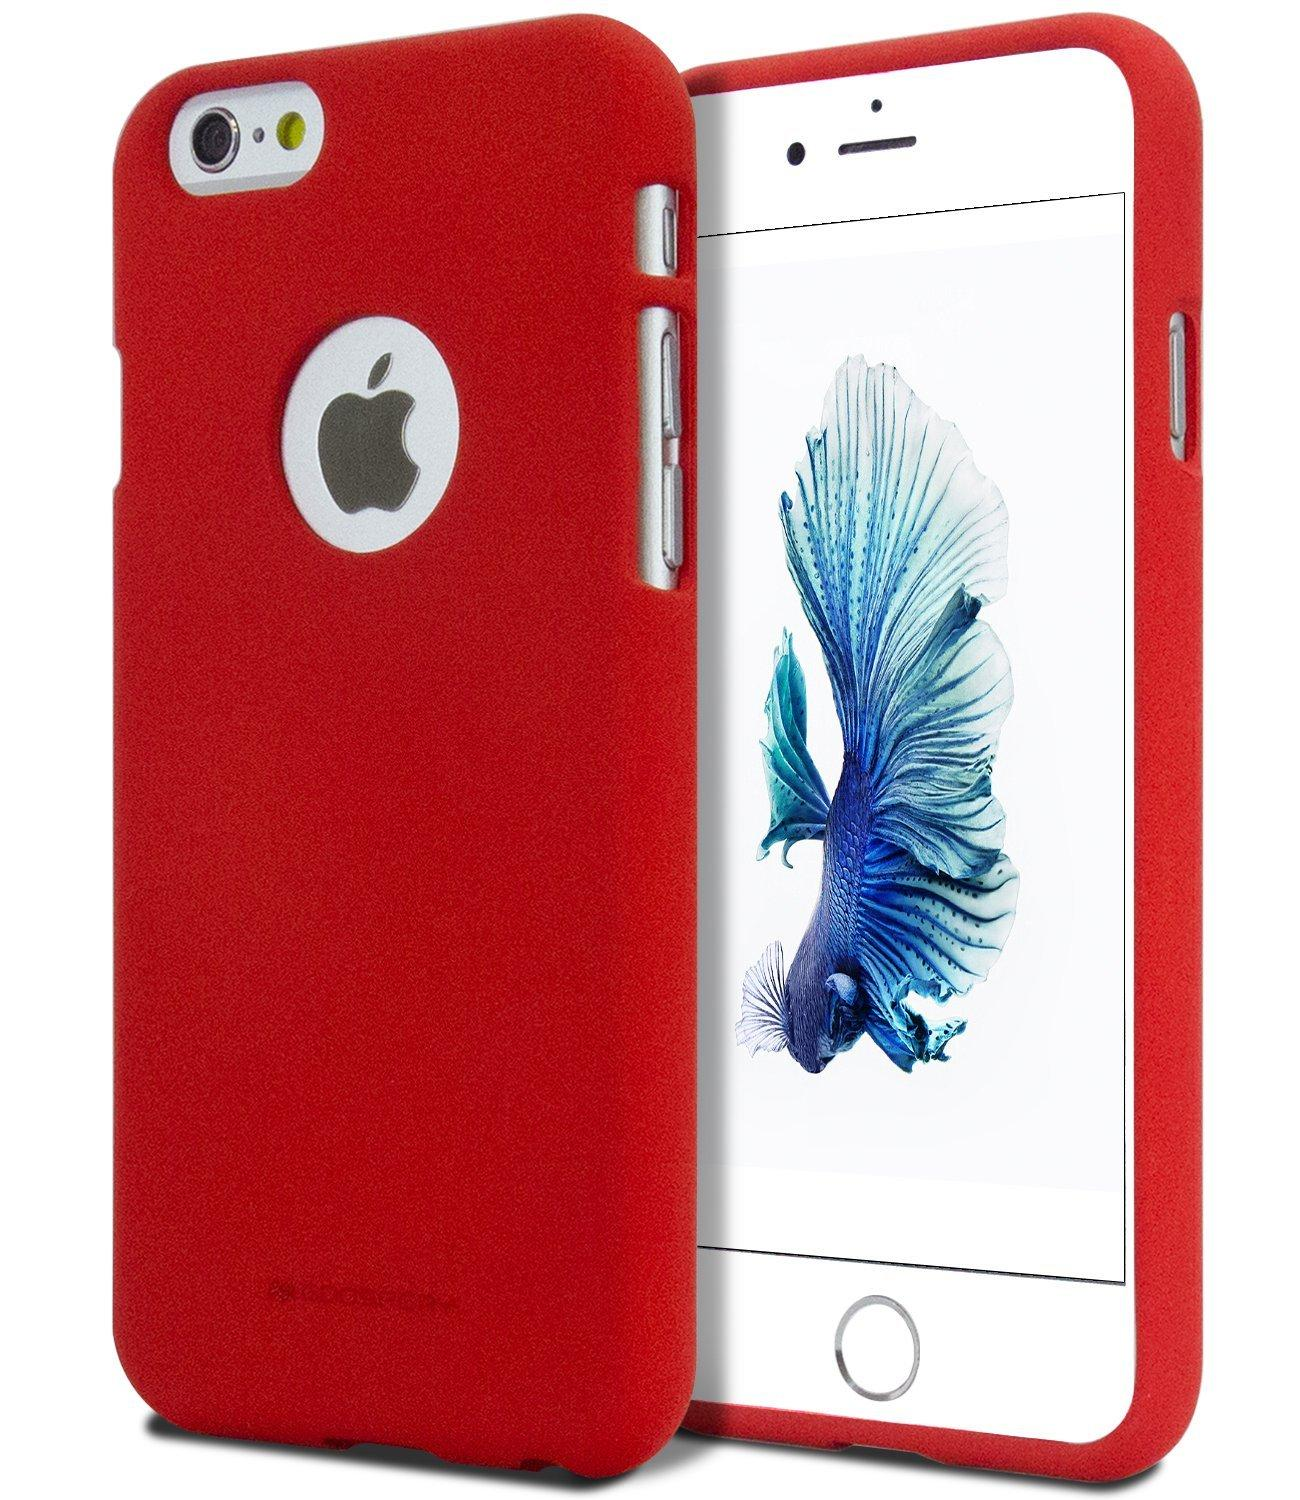 Mercury Soft Feeling TPU Case for iPhone 6 Plus - Red